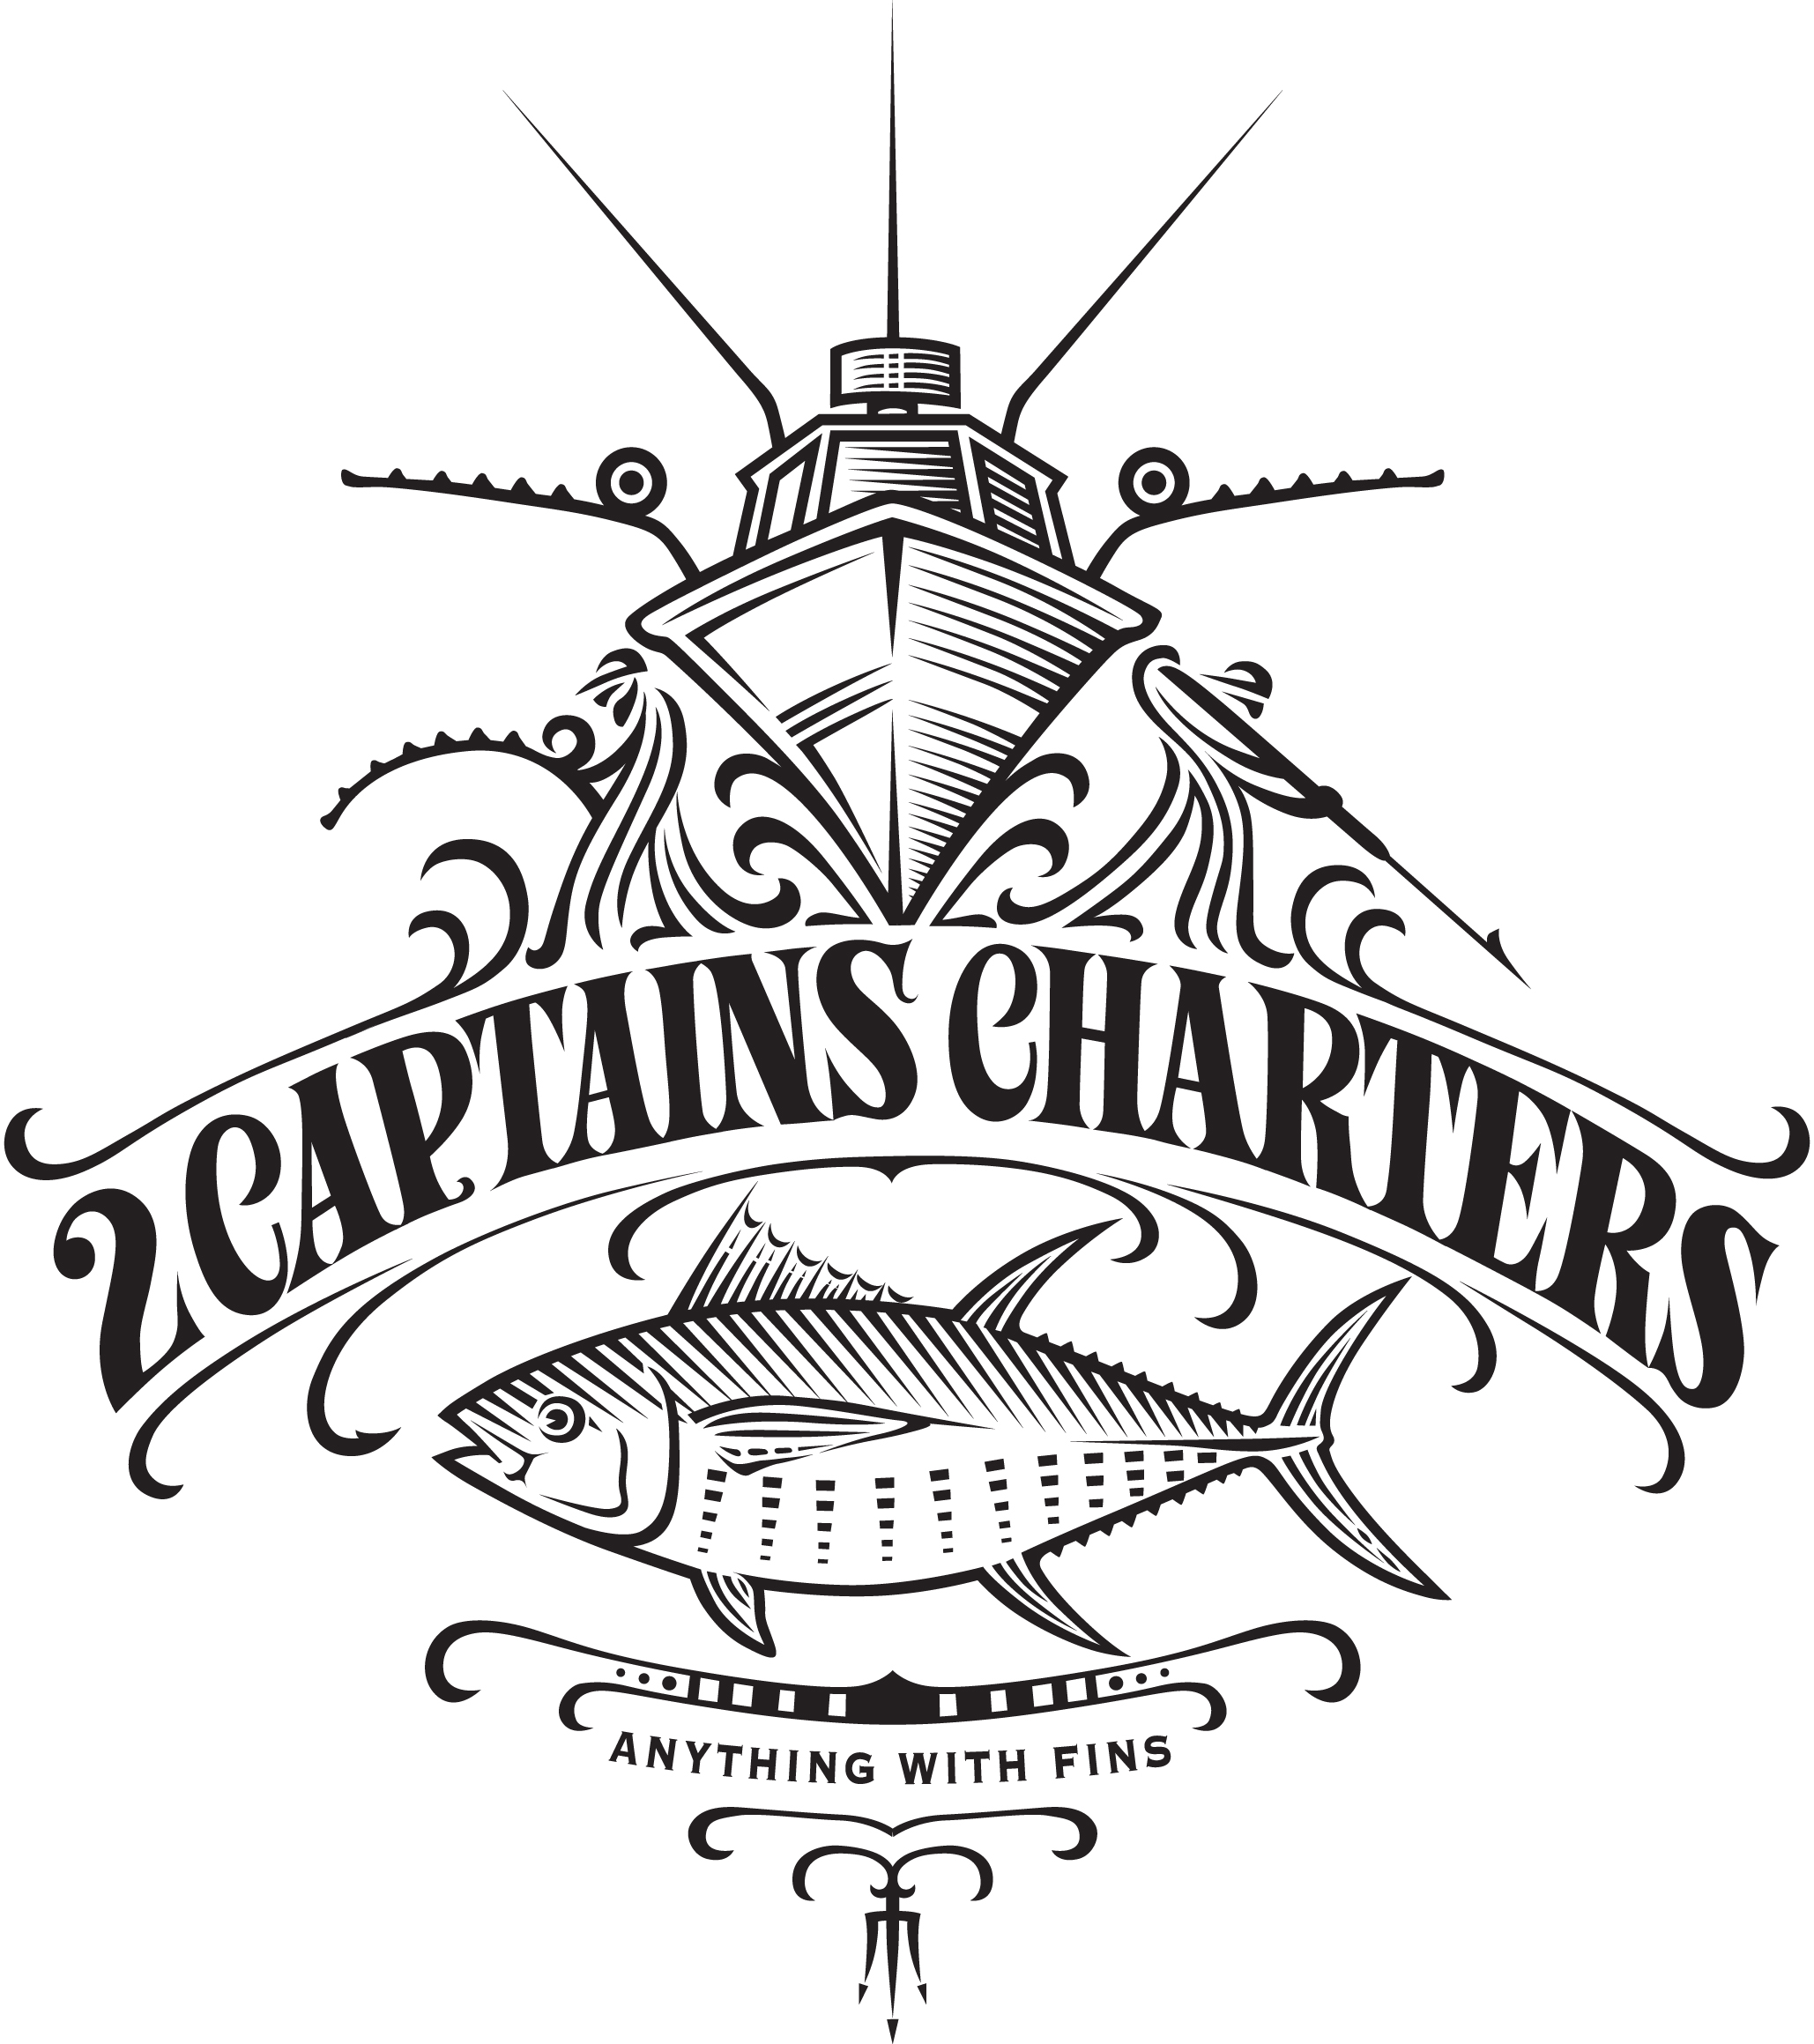 Two Captains Charters | Newburyport Fishing and Cruising